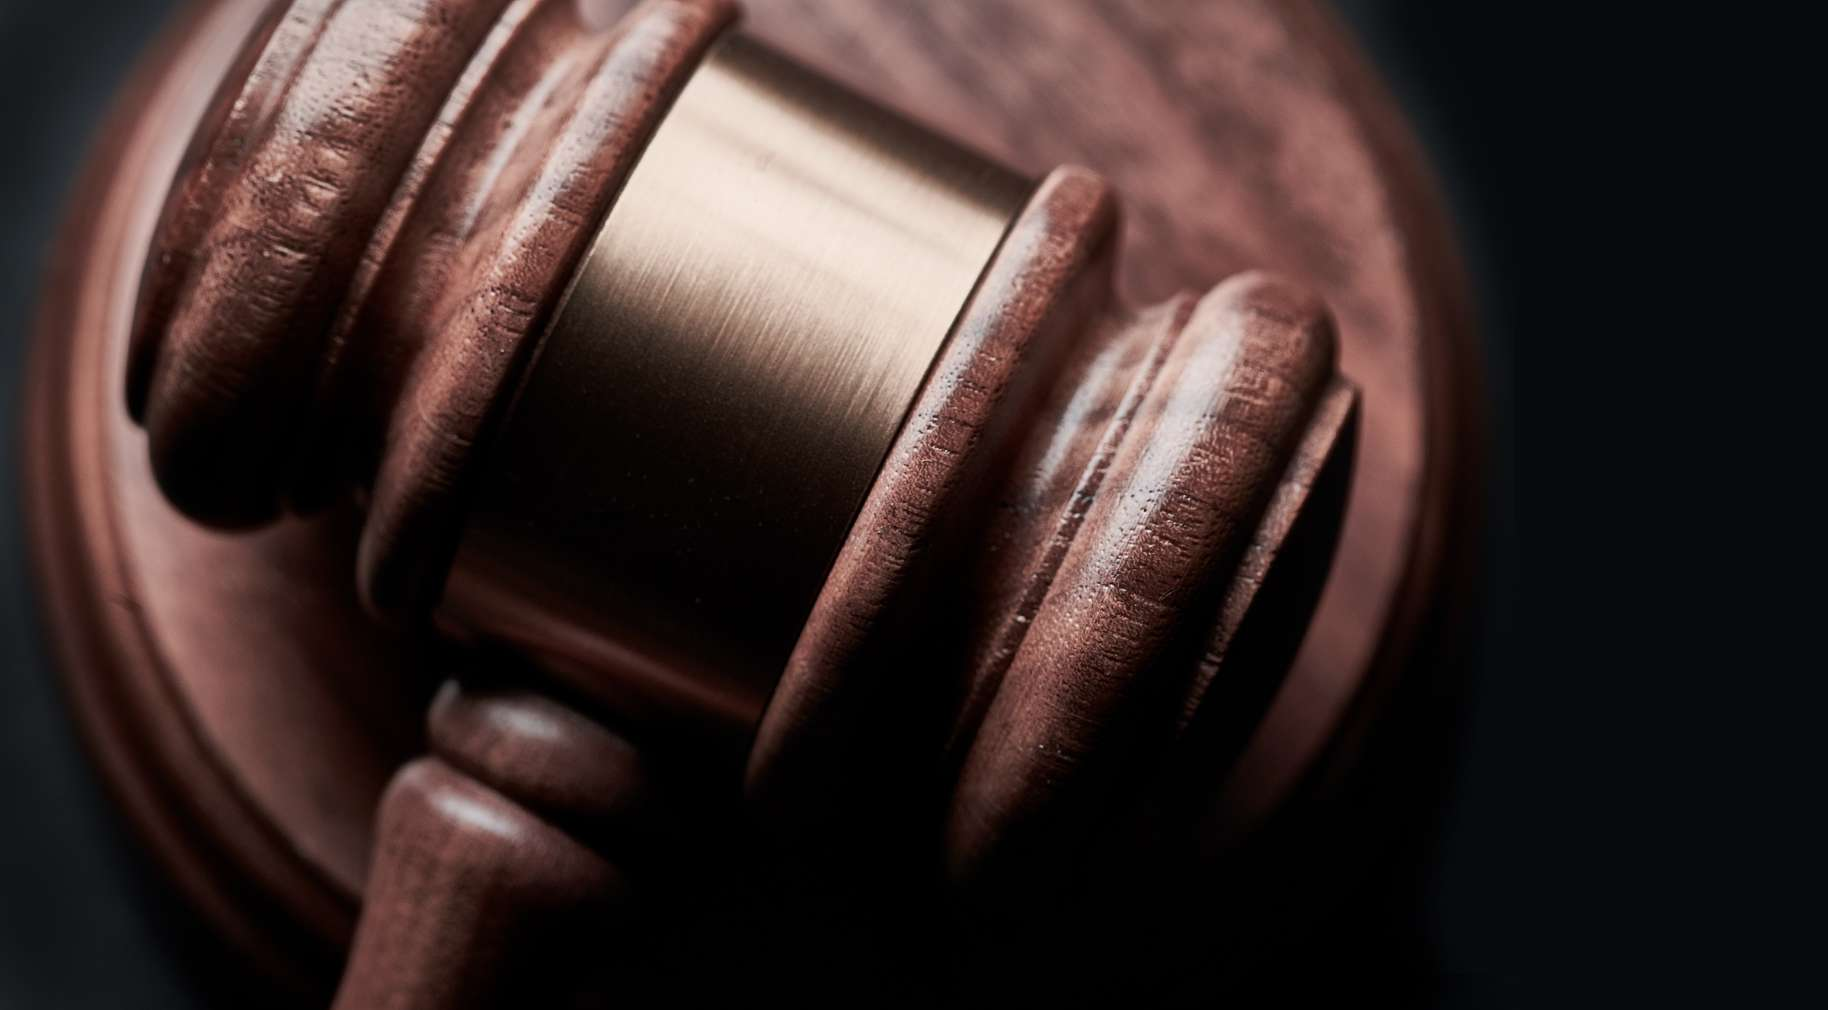 A courtroom gavel